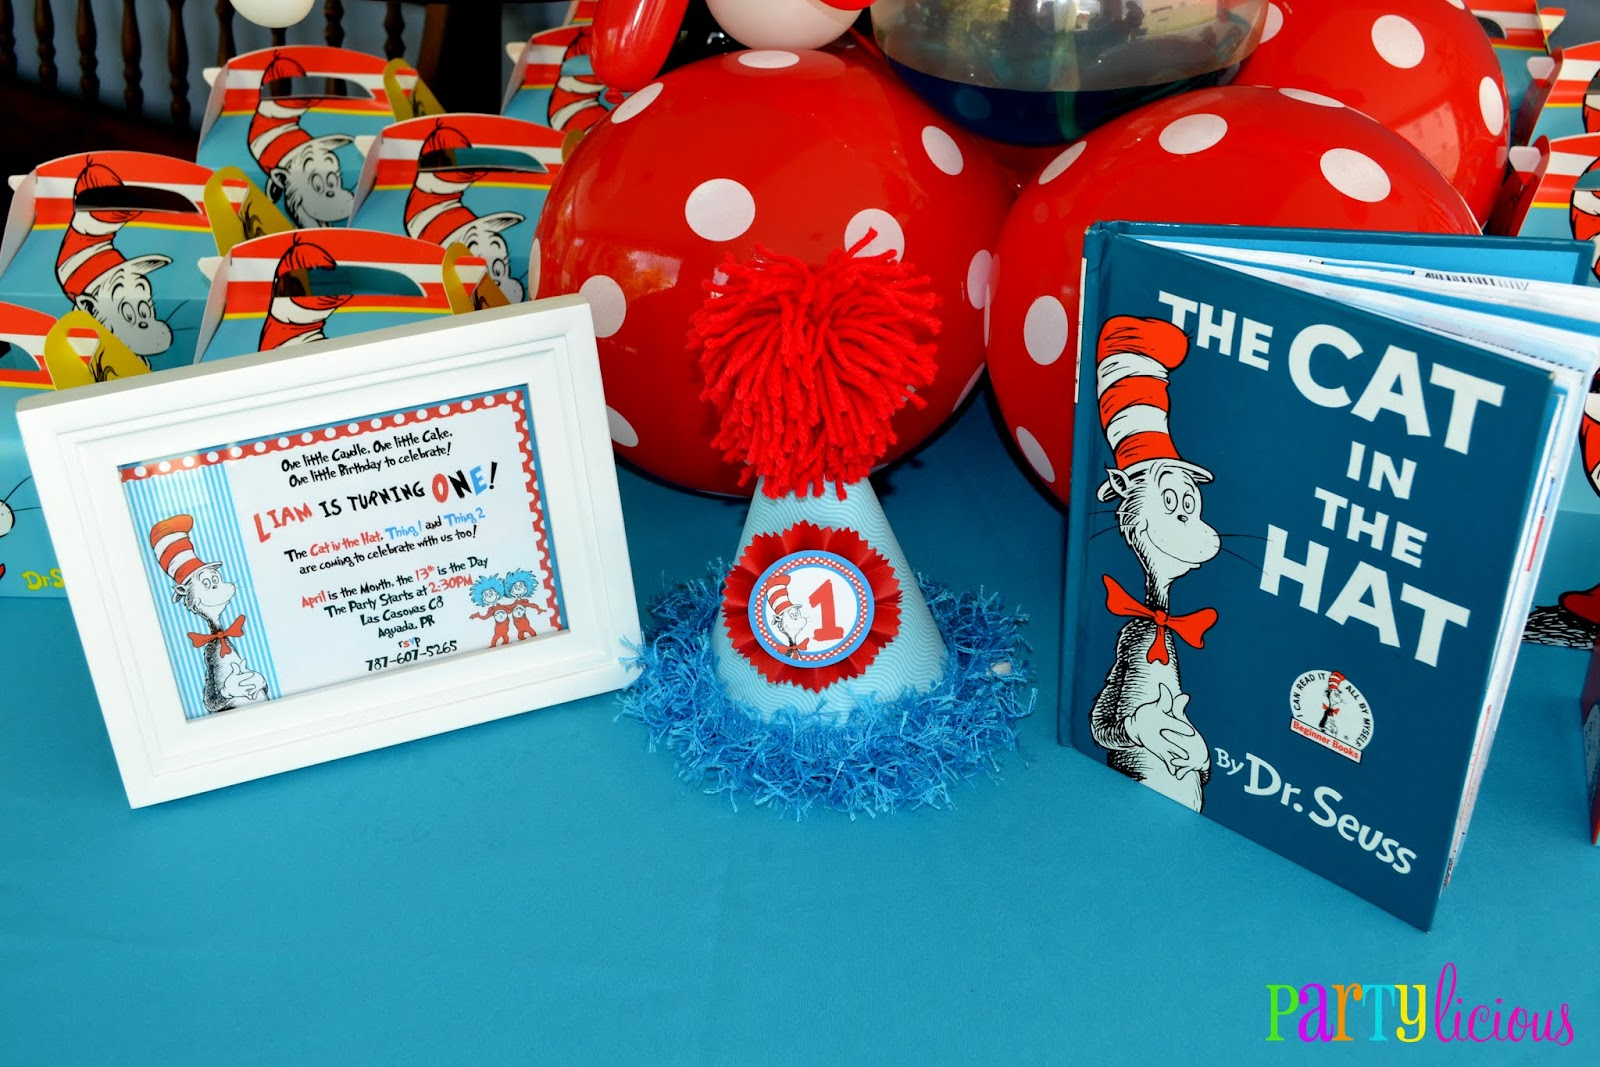 The Cat In Hat furthermore The Cat In Hat further  on dr seuss po props